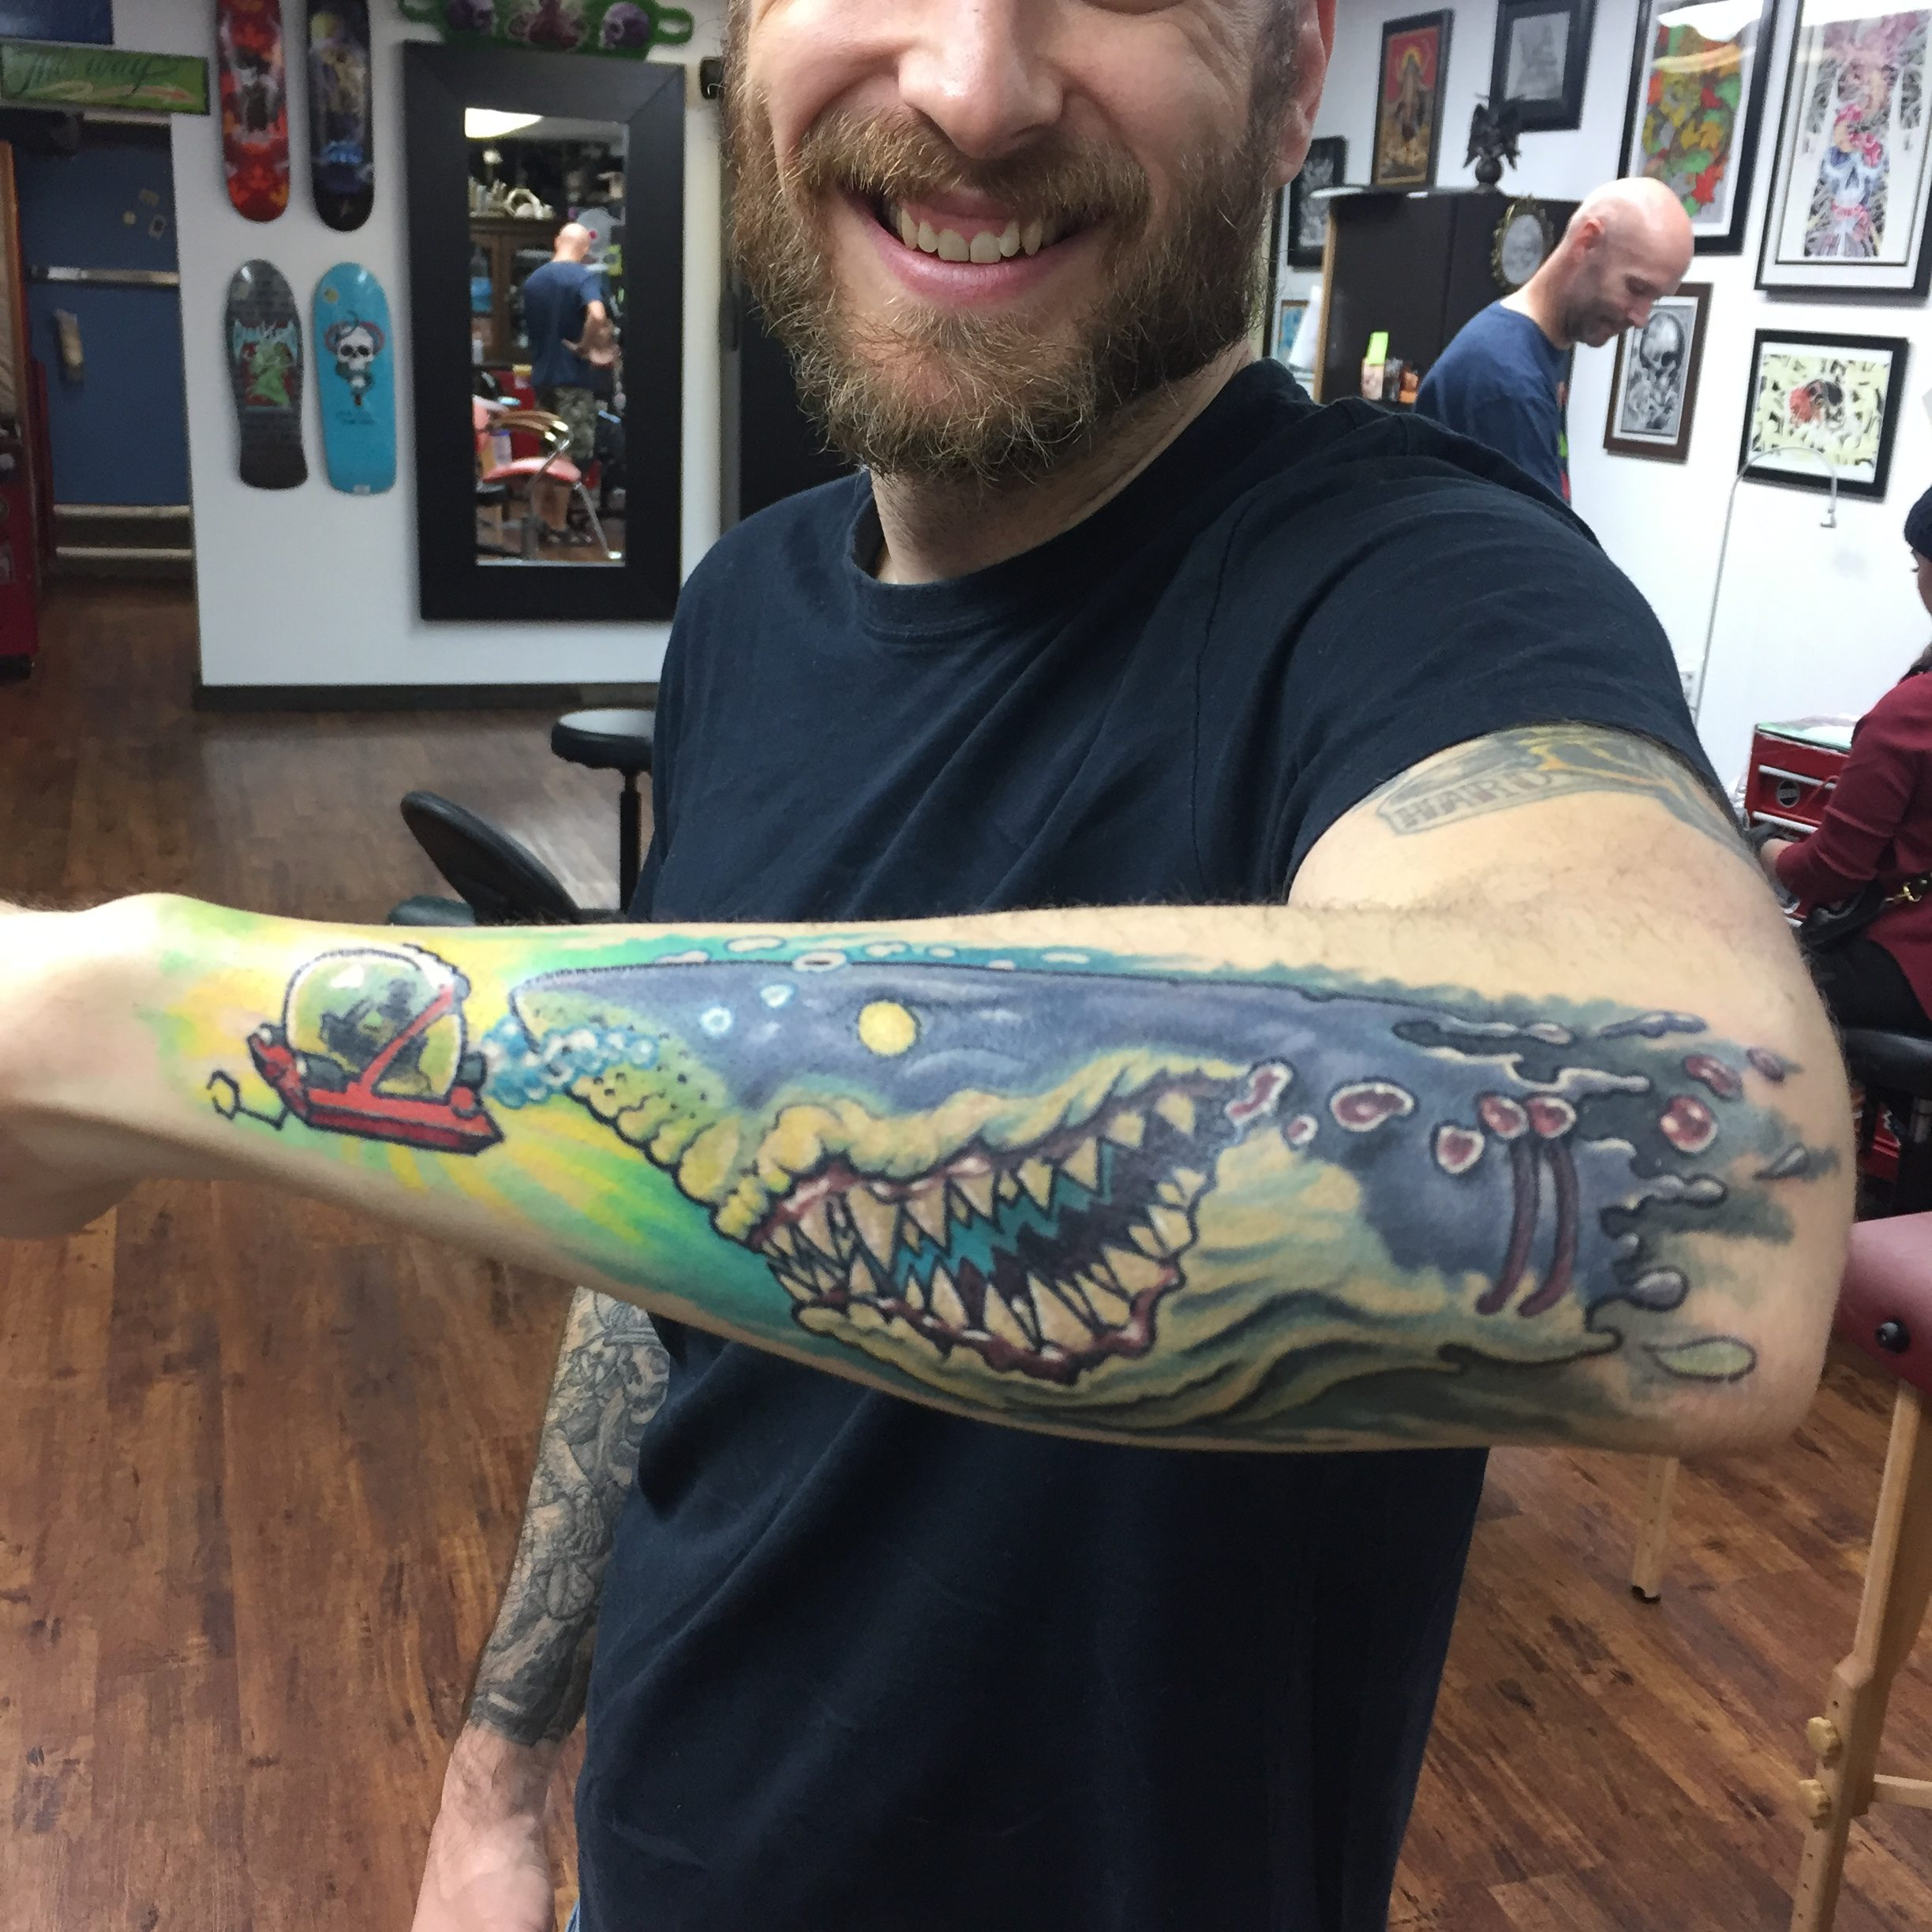 Jason Wainwright Tattoo 2019 Okanagan Tattoo Show & Brewfest Artist